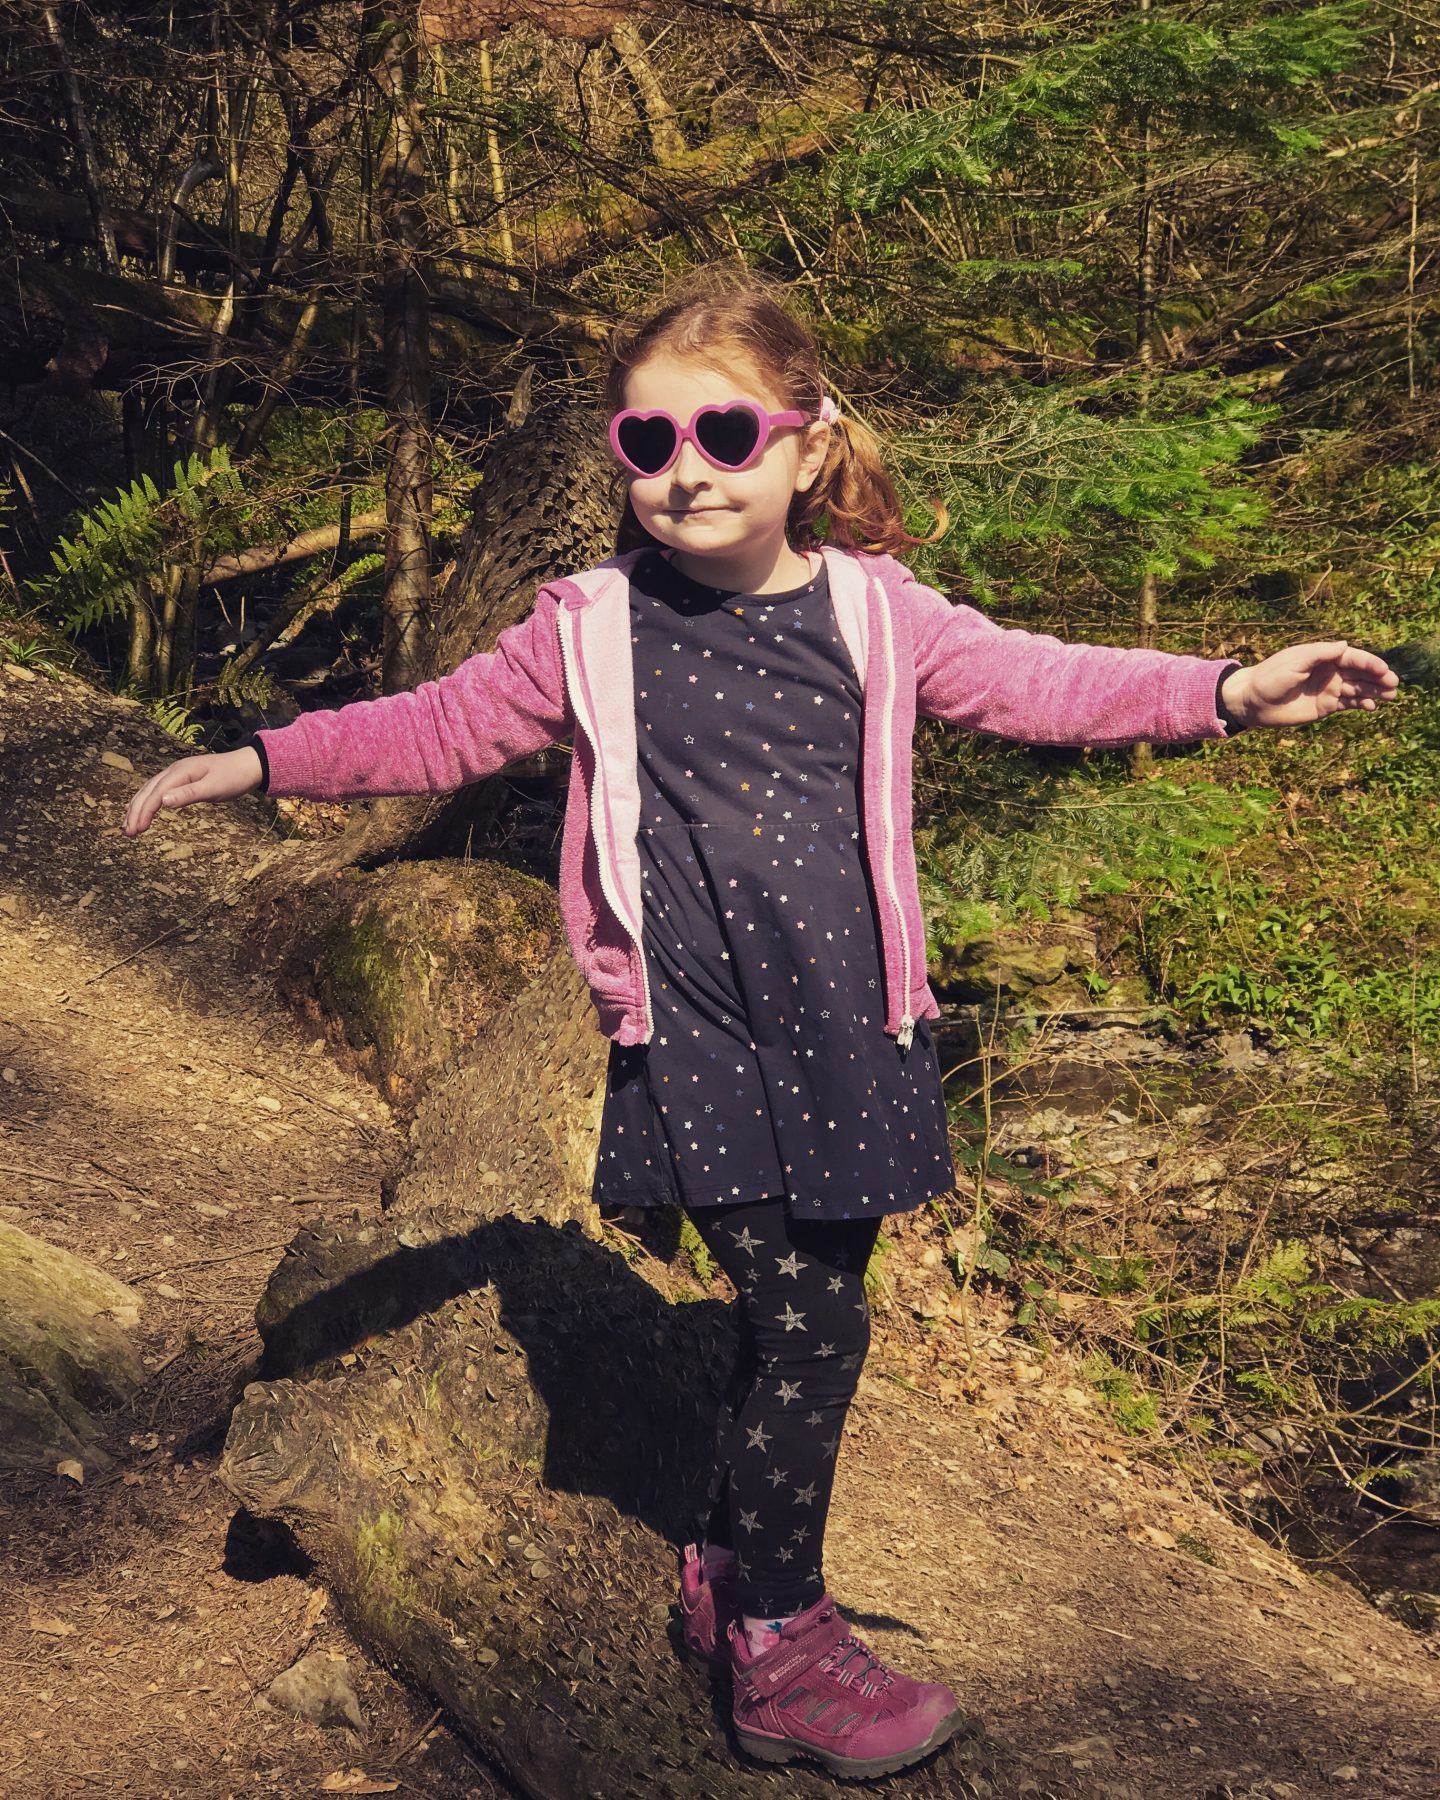 #LivingArrows - The Grizedale Forest Zog Activity Trail 14/52 (2019)